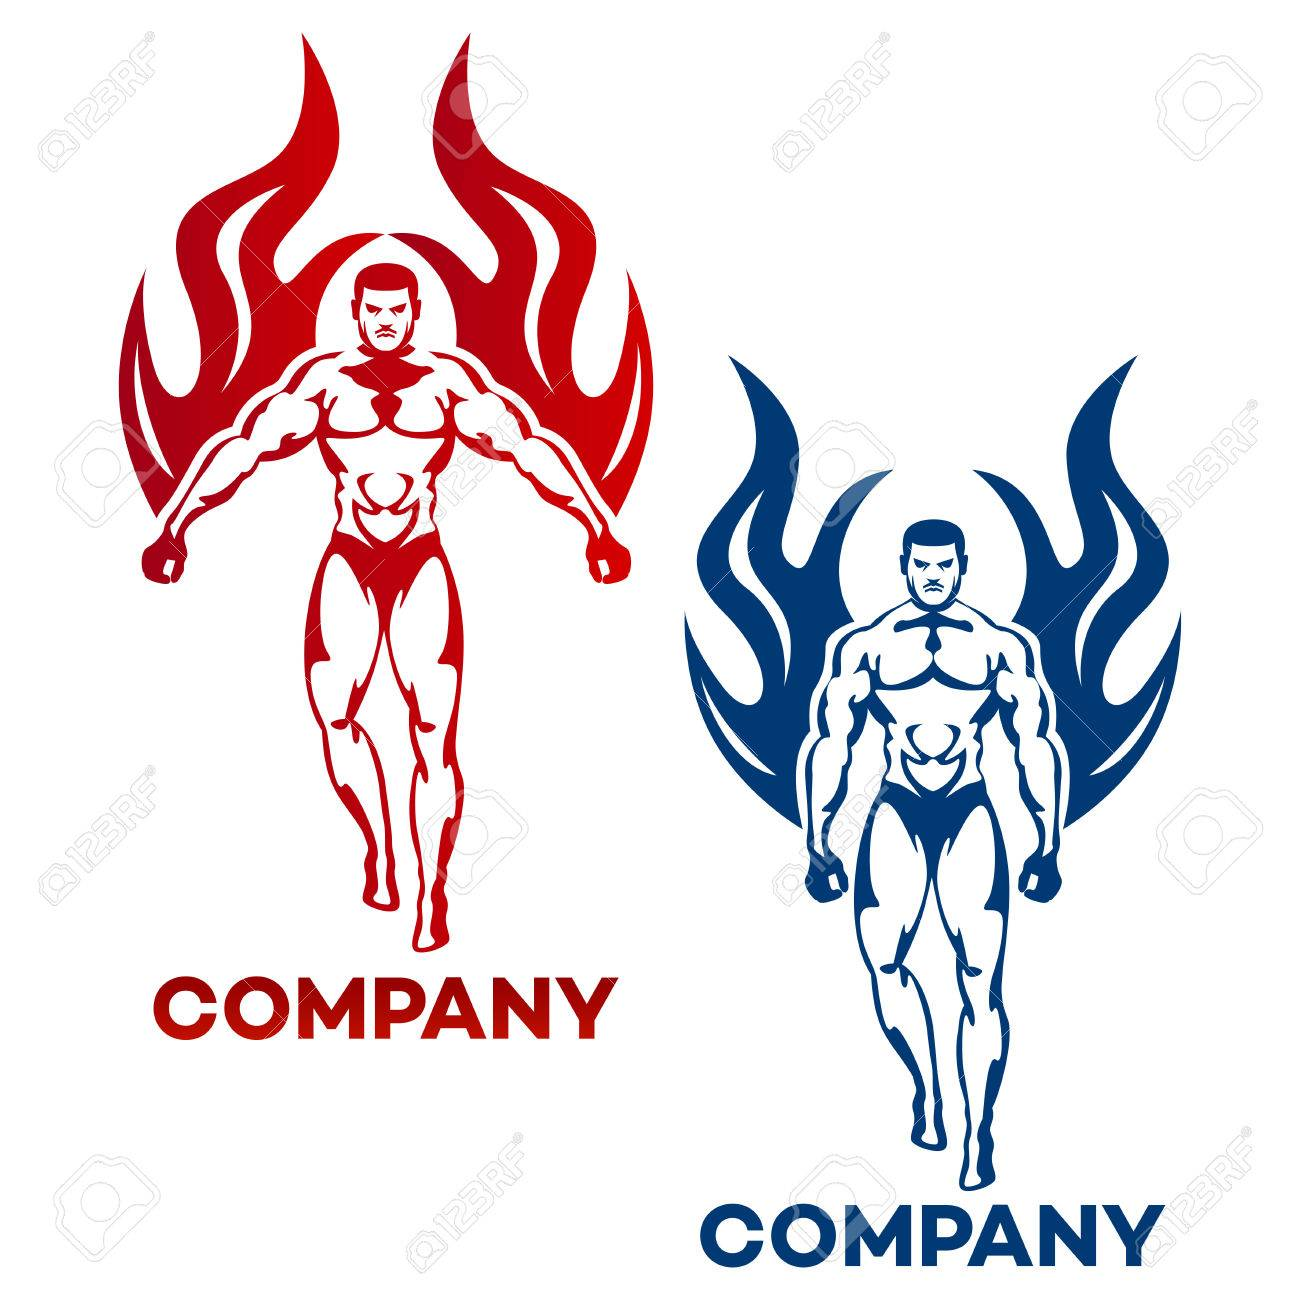 Man fire and water icon royalty free cliparts vectors and stock man fire and water icon stock vector 82014516 biocorpaavc Choice Image